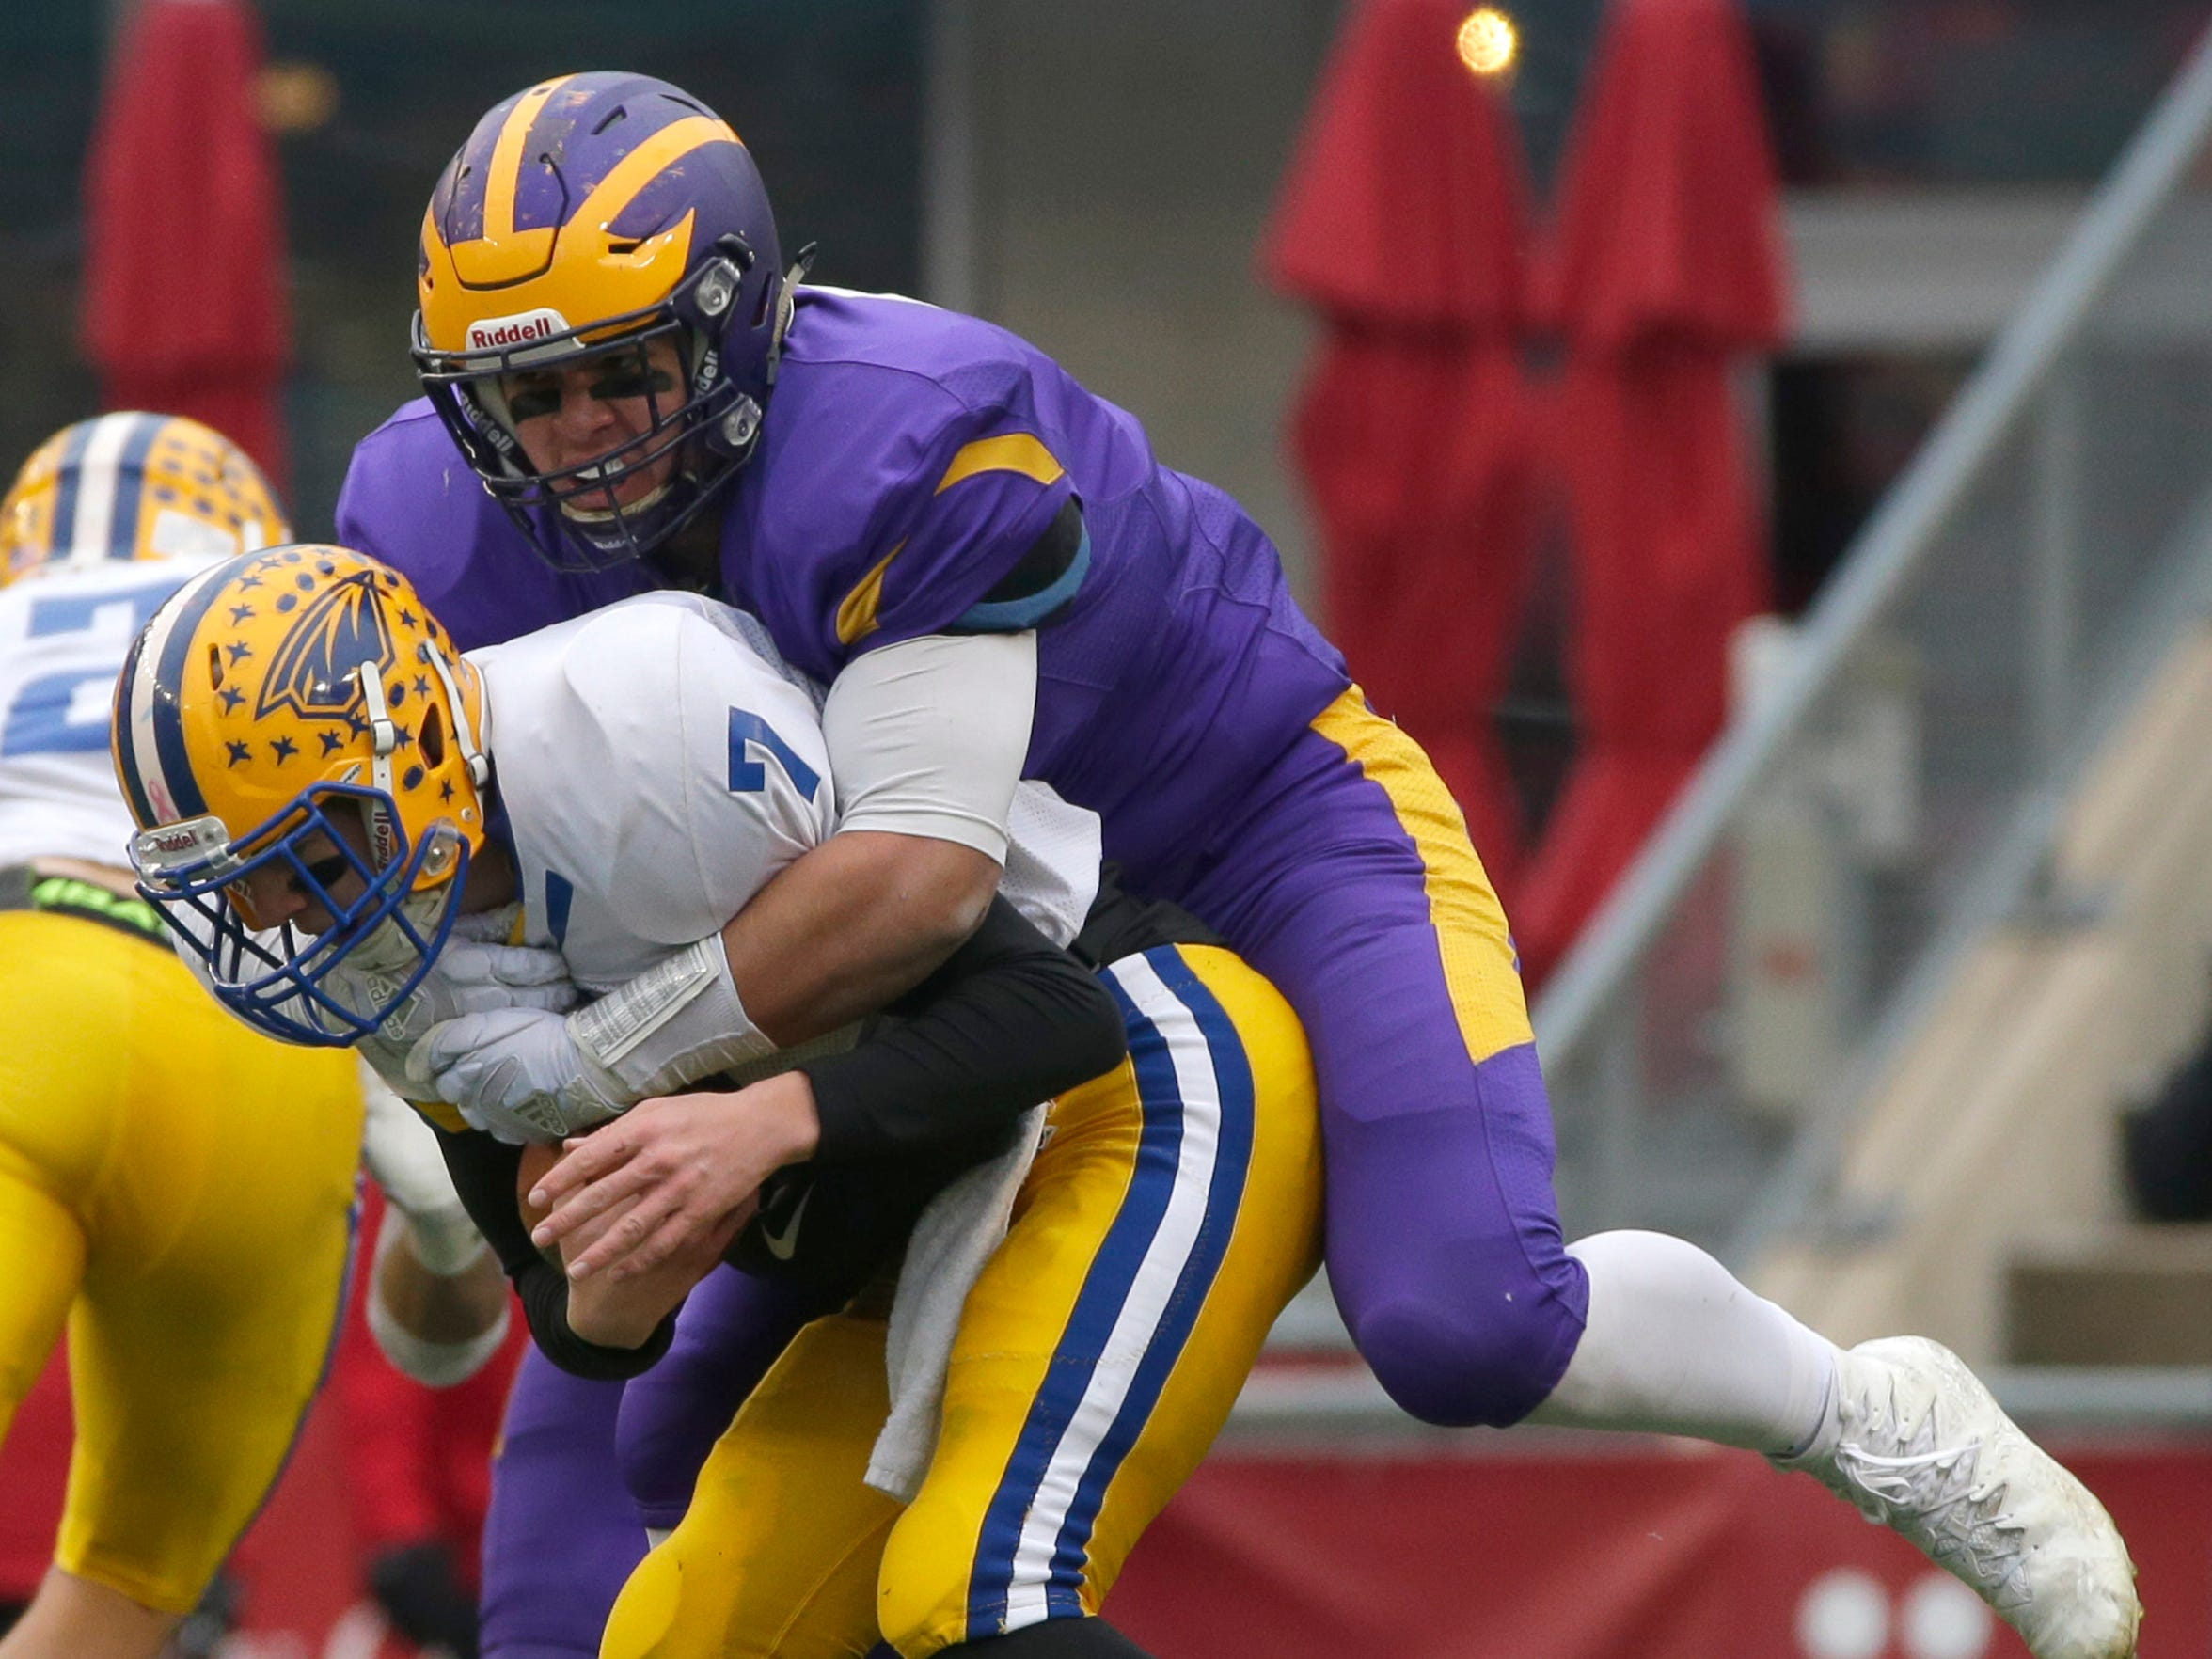 New Berlin Eisenhower defensive lineman Mark Shields sacks Rice Lake quarterback Peyton Buckley in the second quarter during the WIAA Division 3 state football championship game.